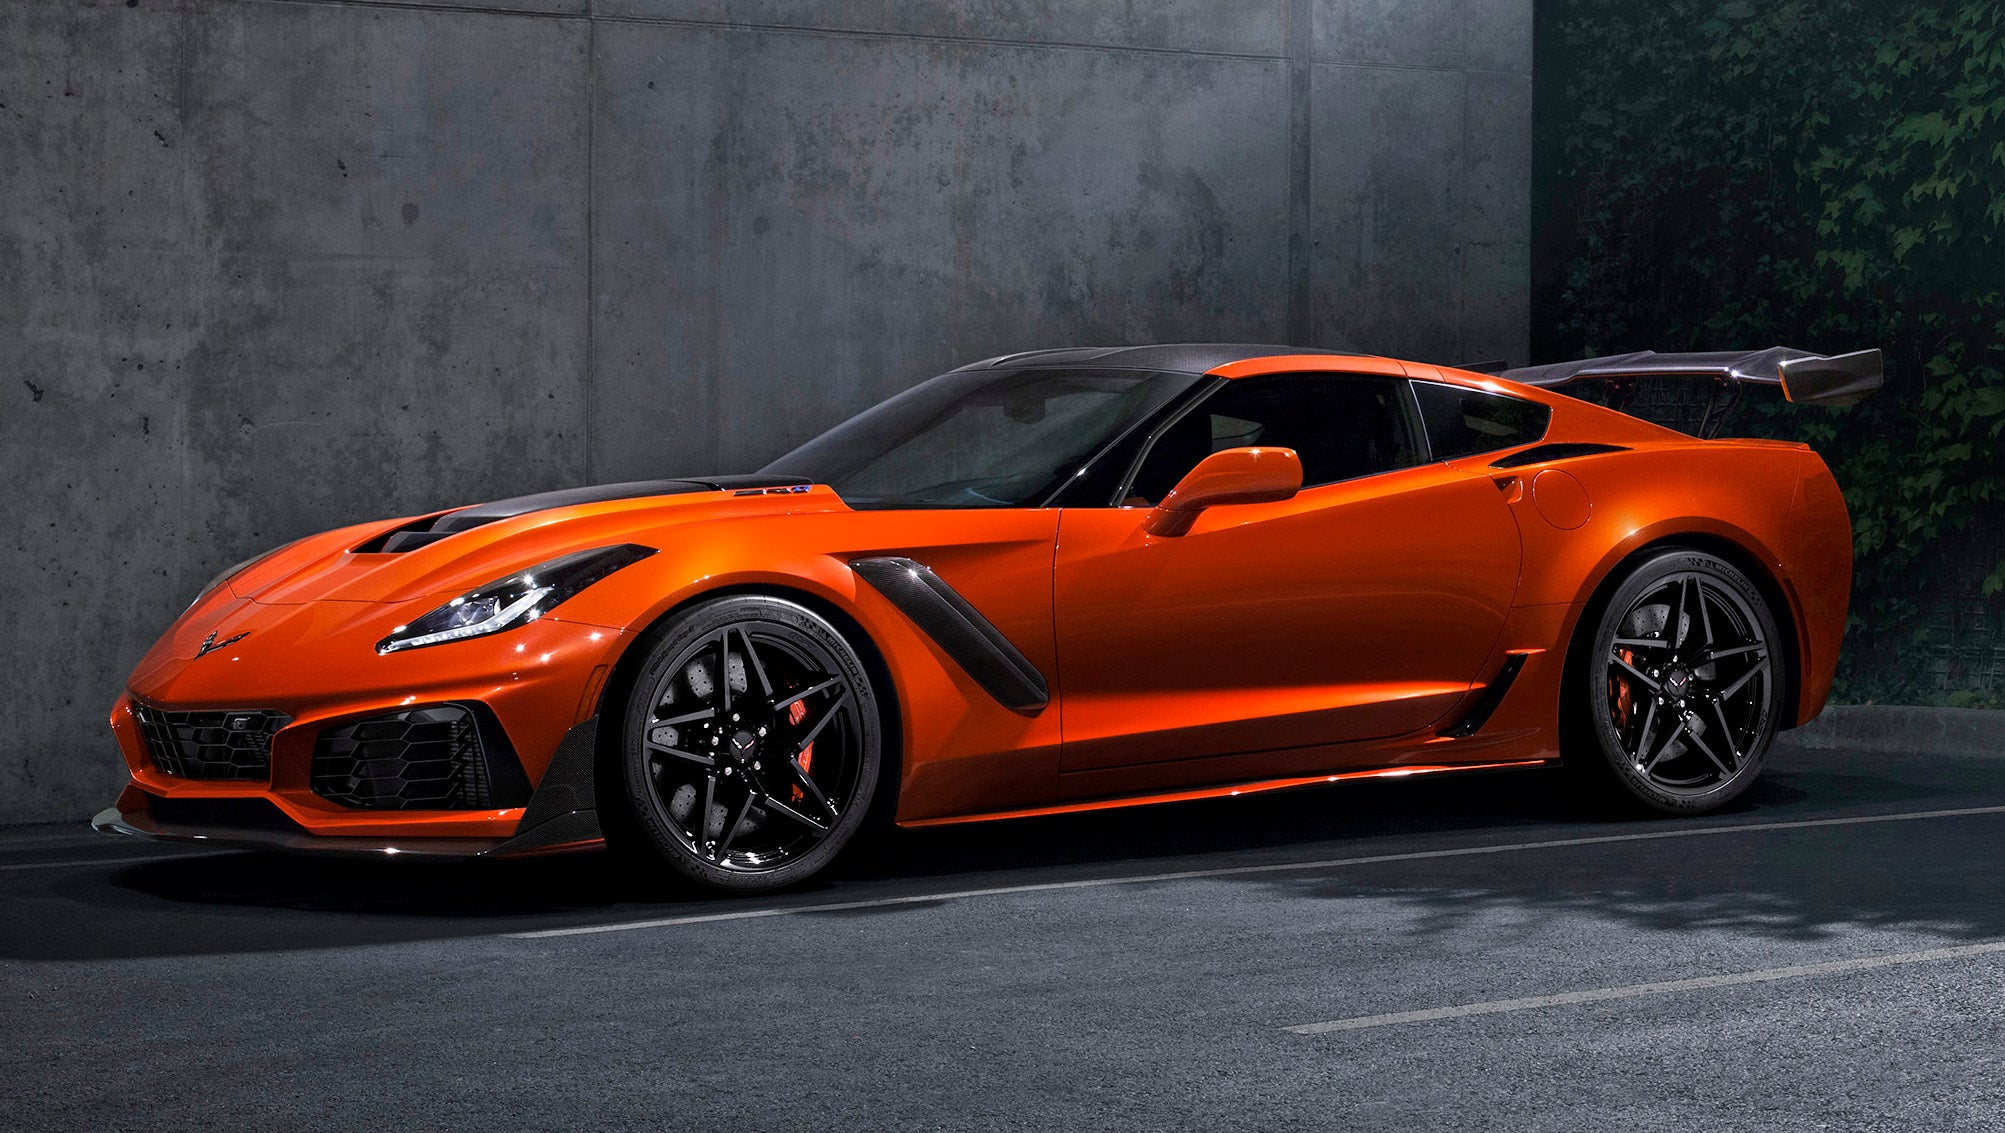 the 2019 chevrolet corvette zr1 meet the fastest and most powerful